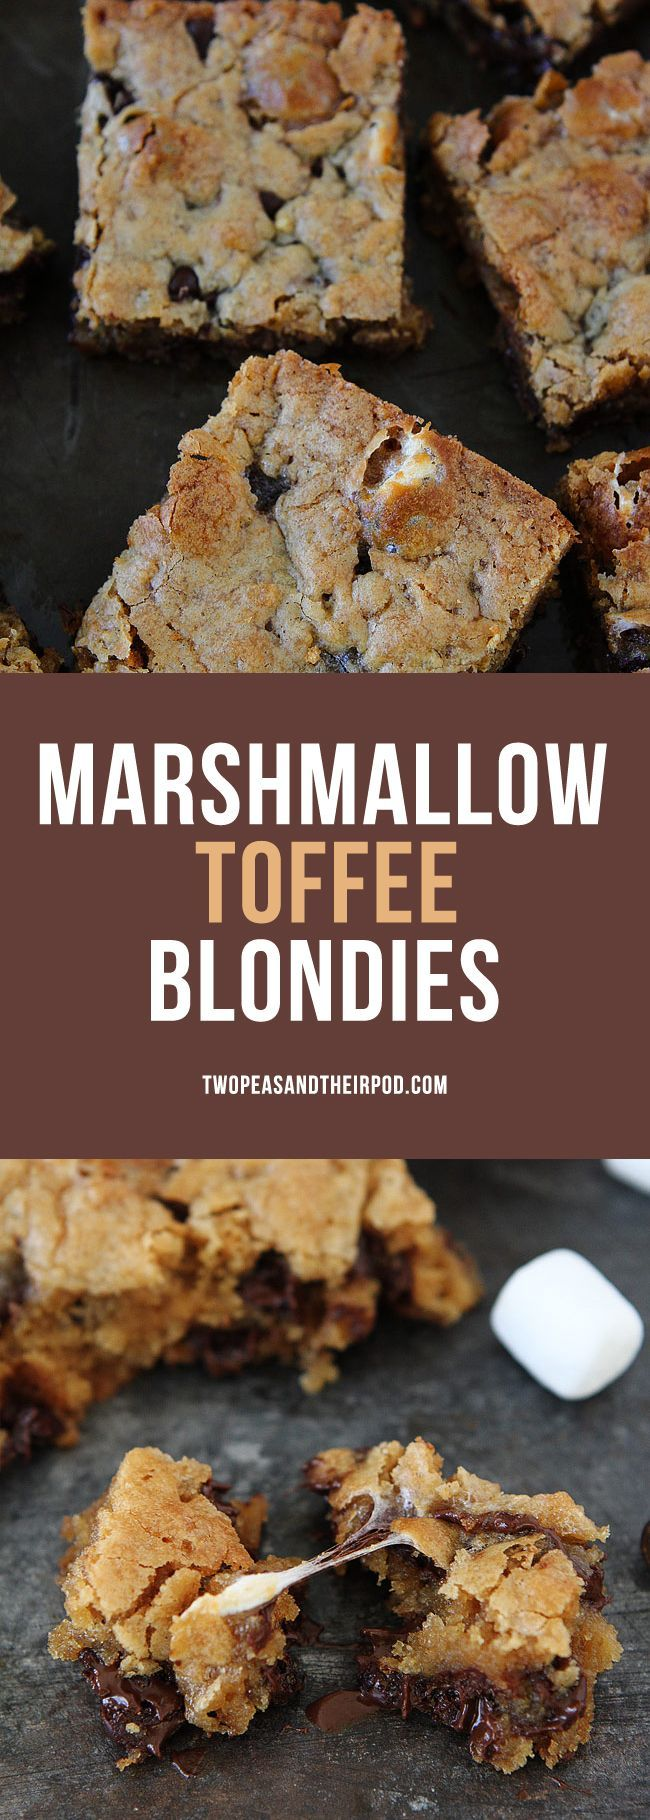 Marshmallow Toffee Blondies-easy blondies with marshmallows, toffee, and chocolate chips. These chewy blondies make a great dessert for parties, game day, or any day!